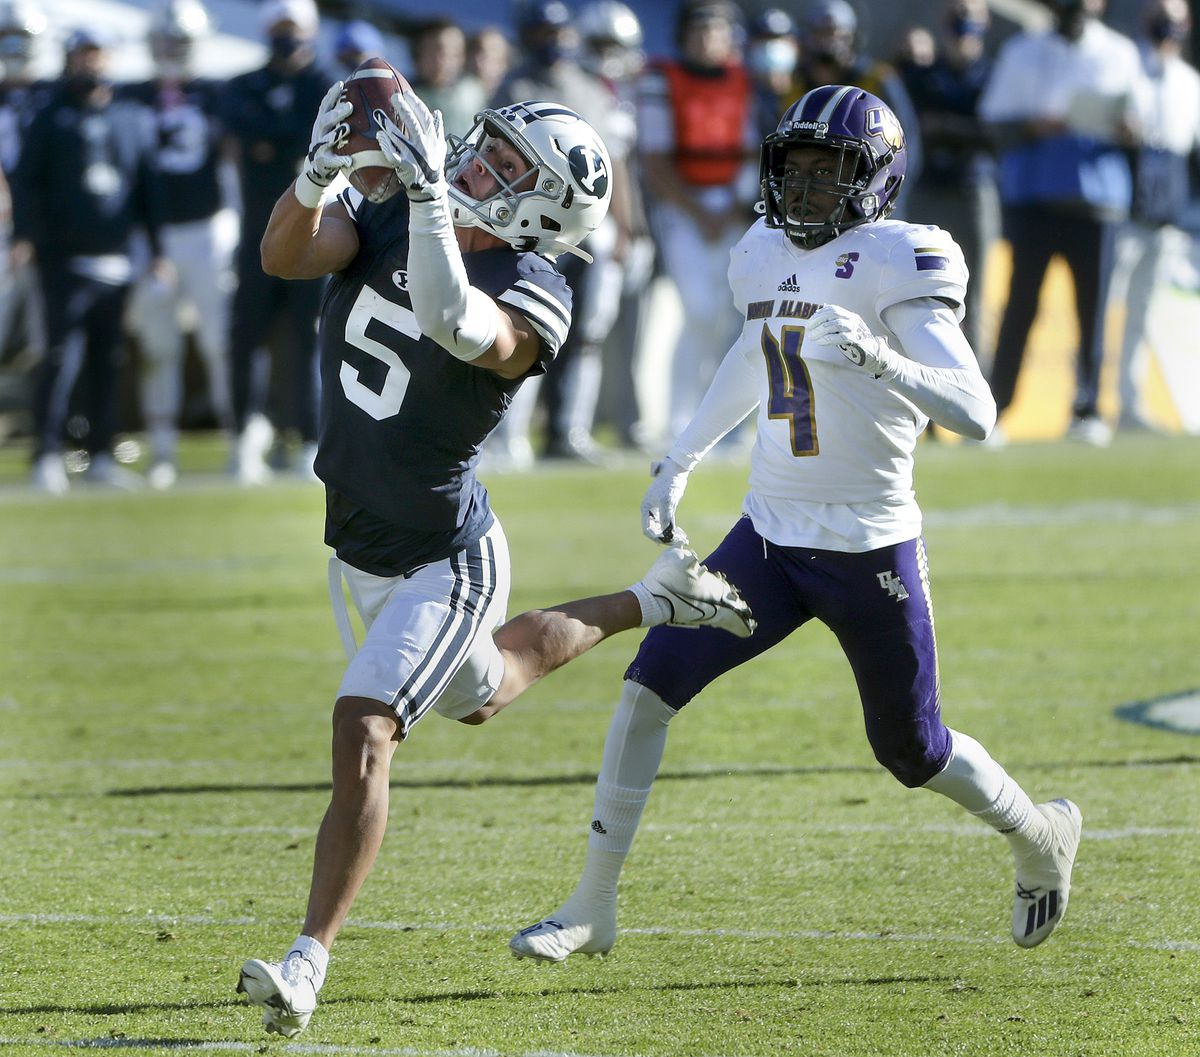 Brigham Young Cougars wide receiver Dax Milne (5) hauls in a long pass over North Alabama Lions cornerback Will Singleton (4) during a game in Provo on Saturday, Nov. 21, 2020.